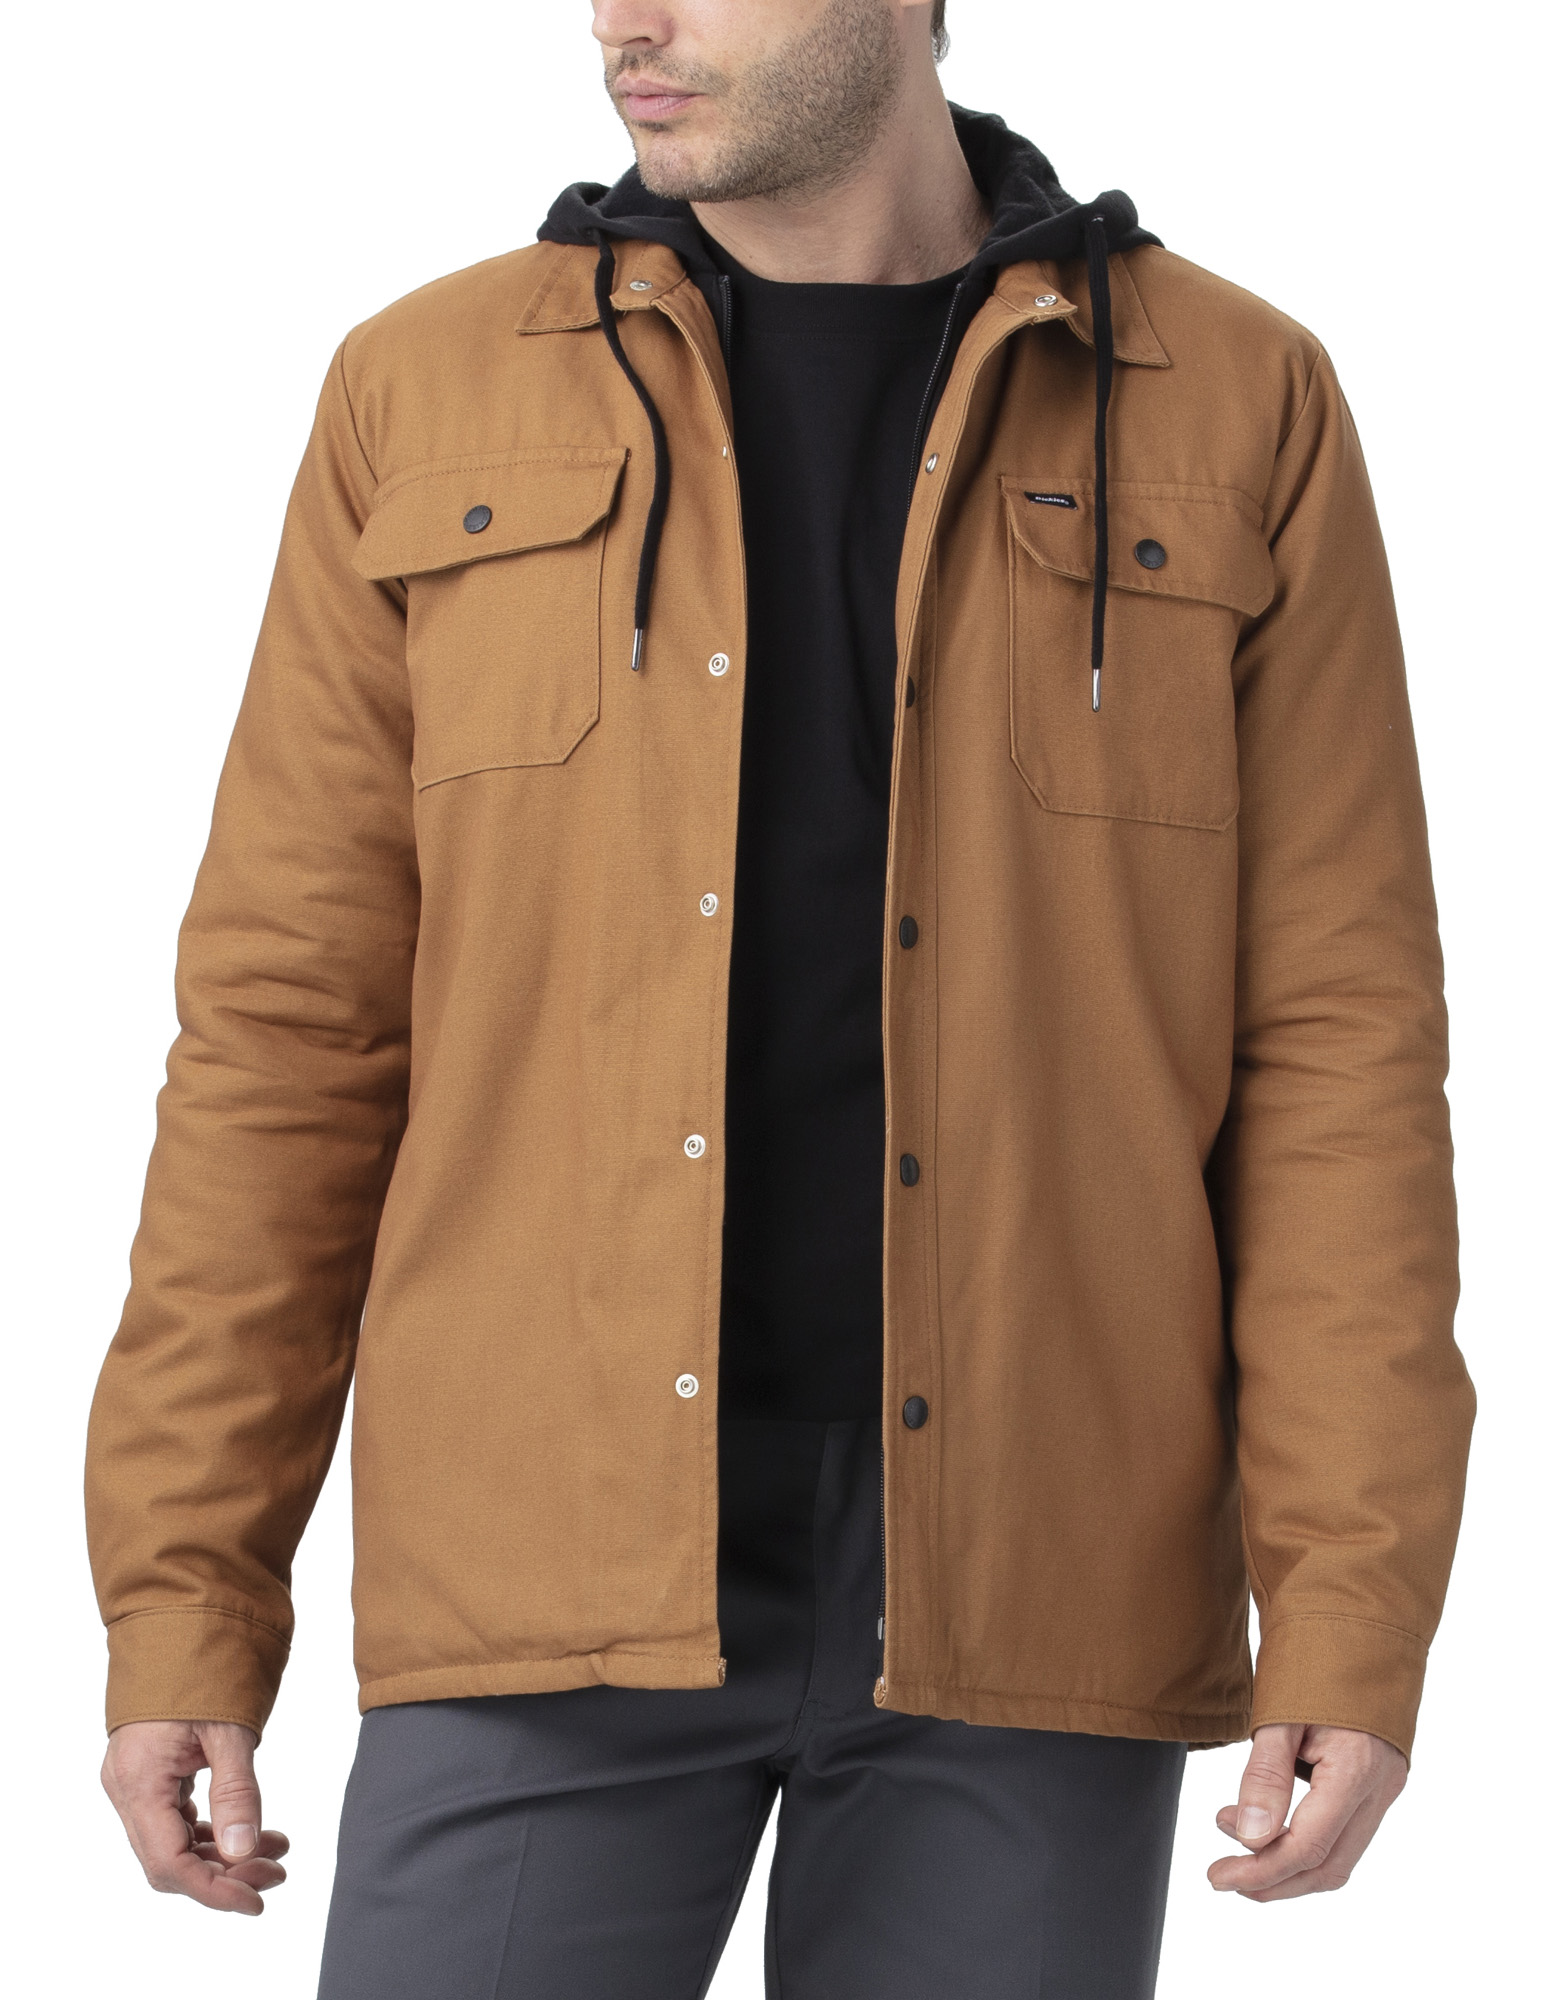 Dickies '67 Duck Shirt Jacket - Brown Duck (BD)